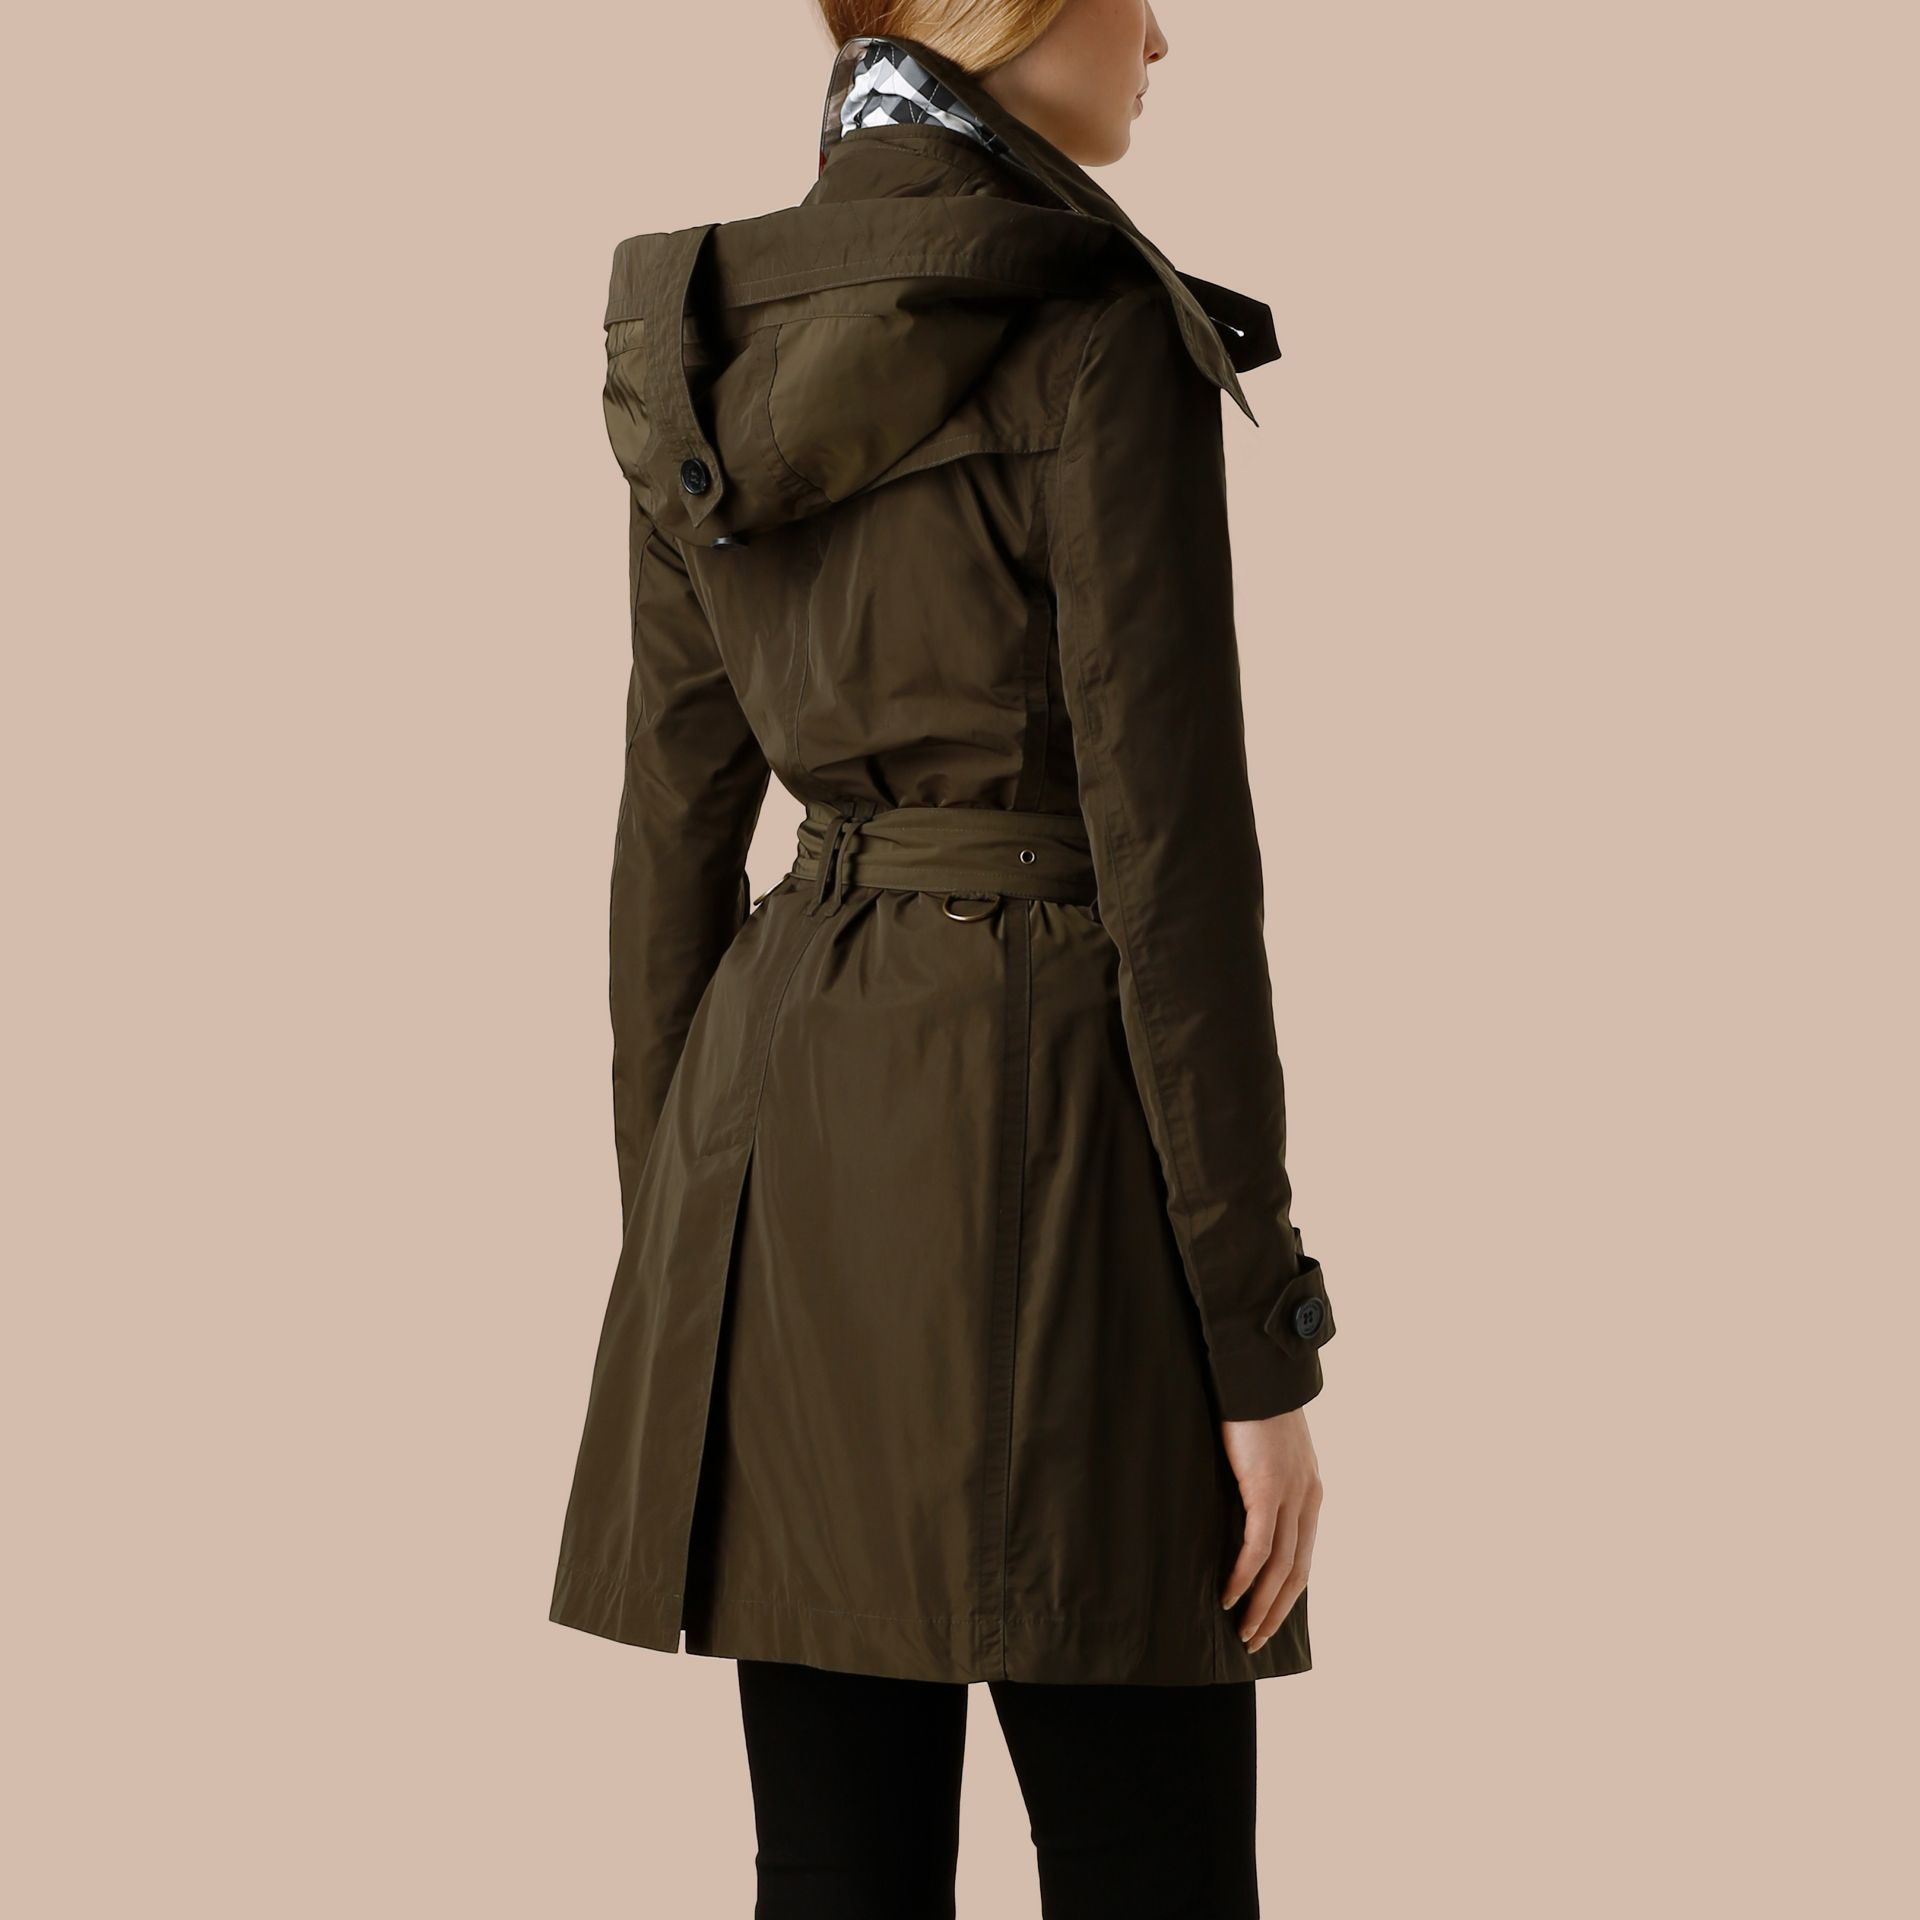 Taffeta Trench Coat with Detachable Hood Dark Olive - gallery image 3